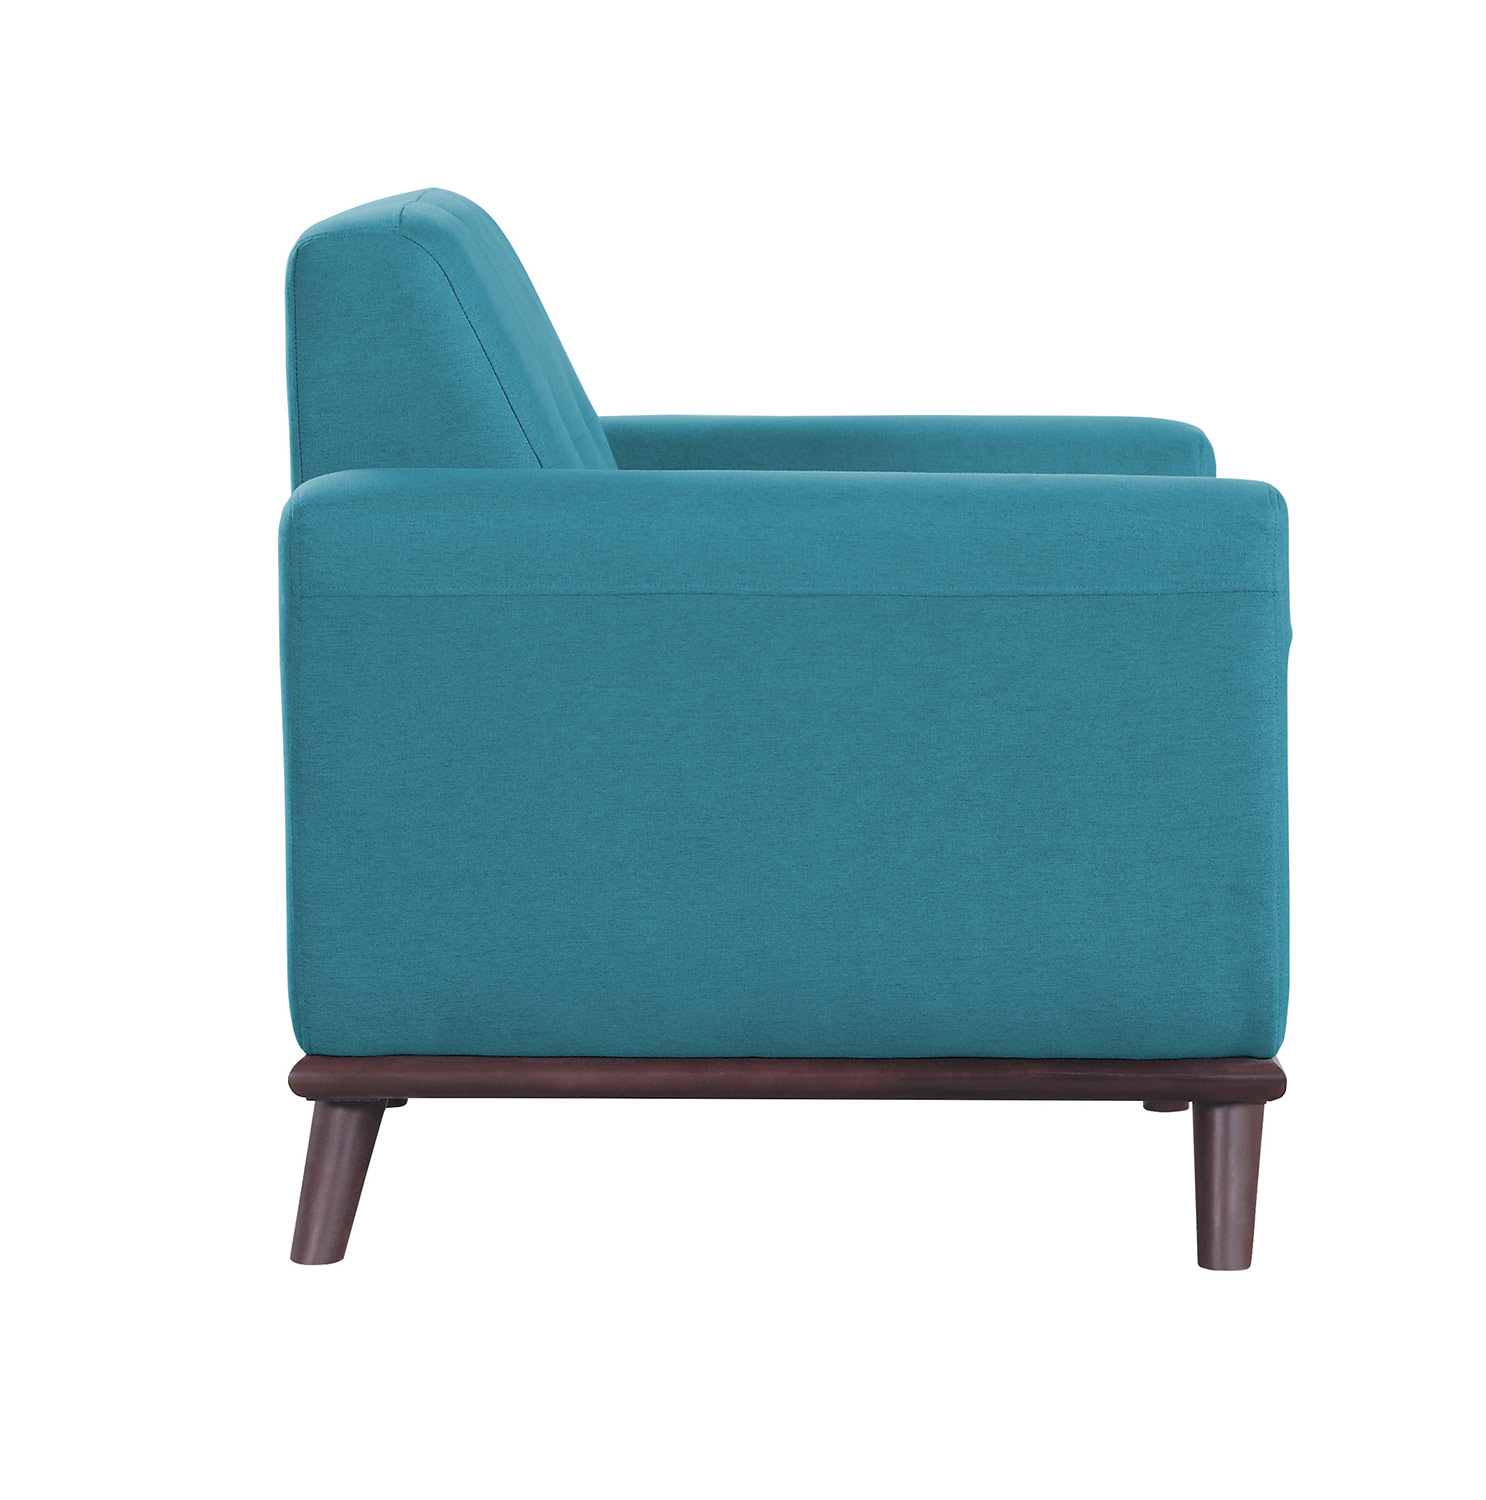 Homelegance Rittman Chair - Blue